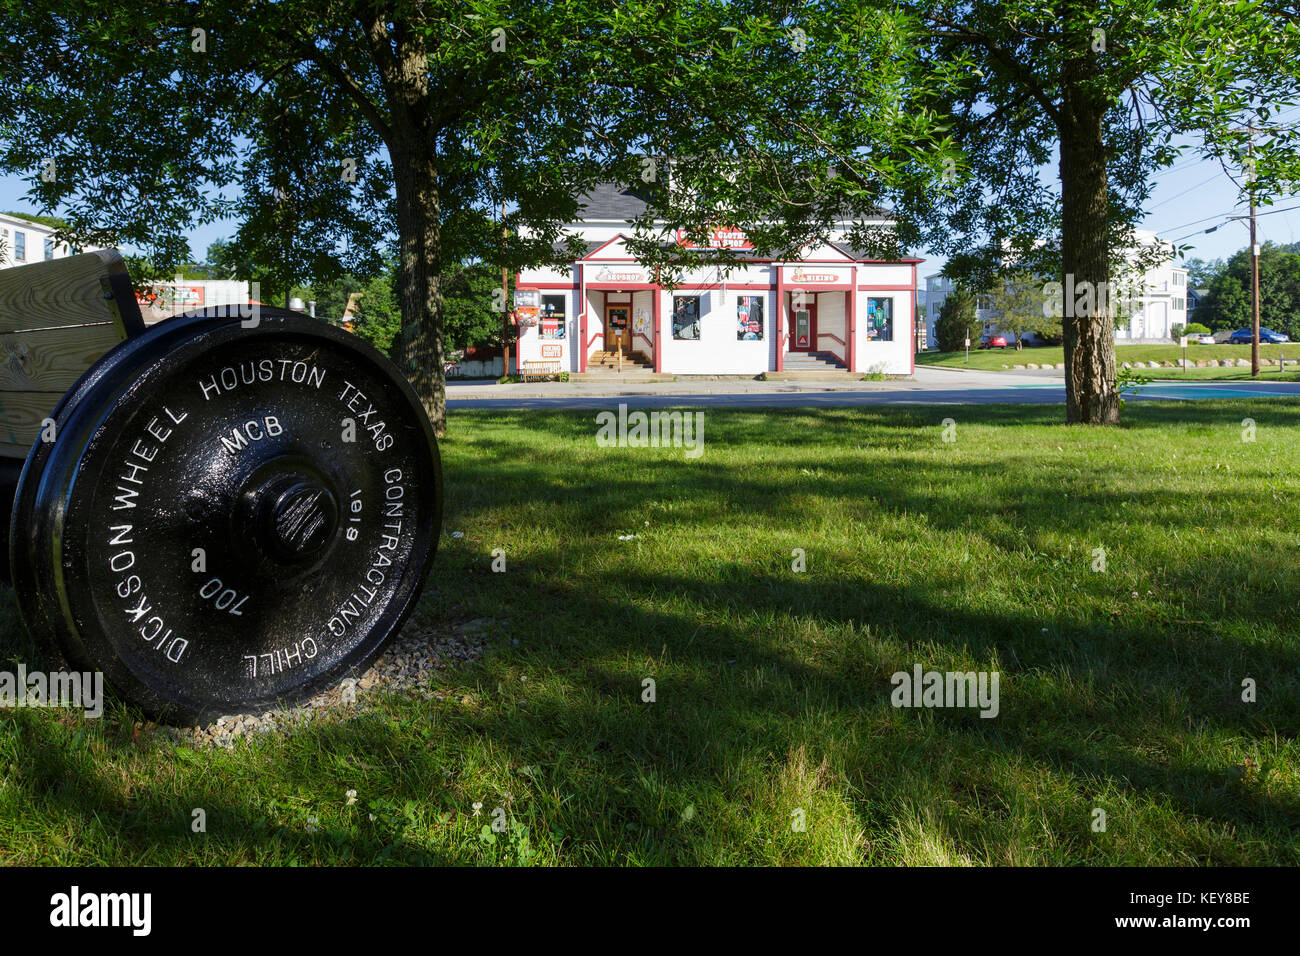 Lahout's Clothing and Ski Shop in Lincoln, New Hampshire USA. - Stock Image